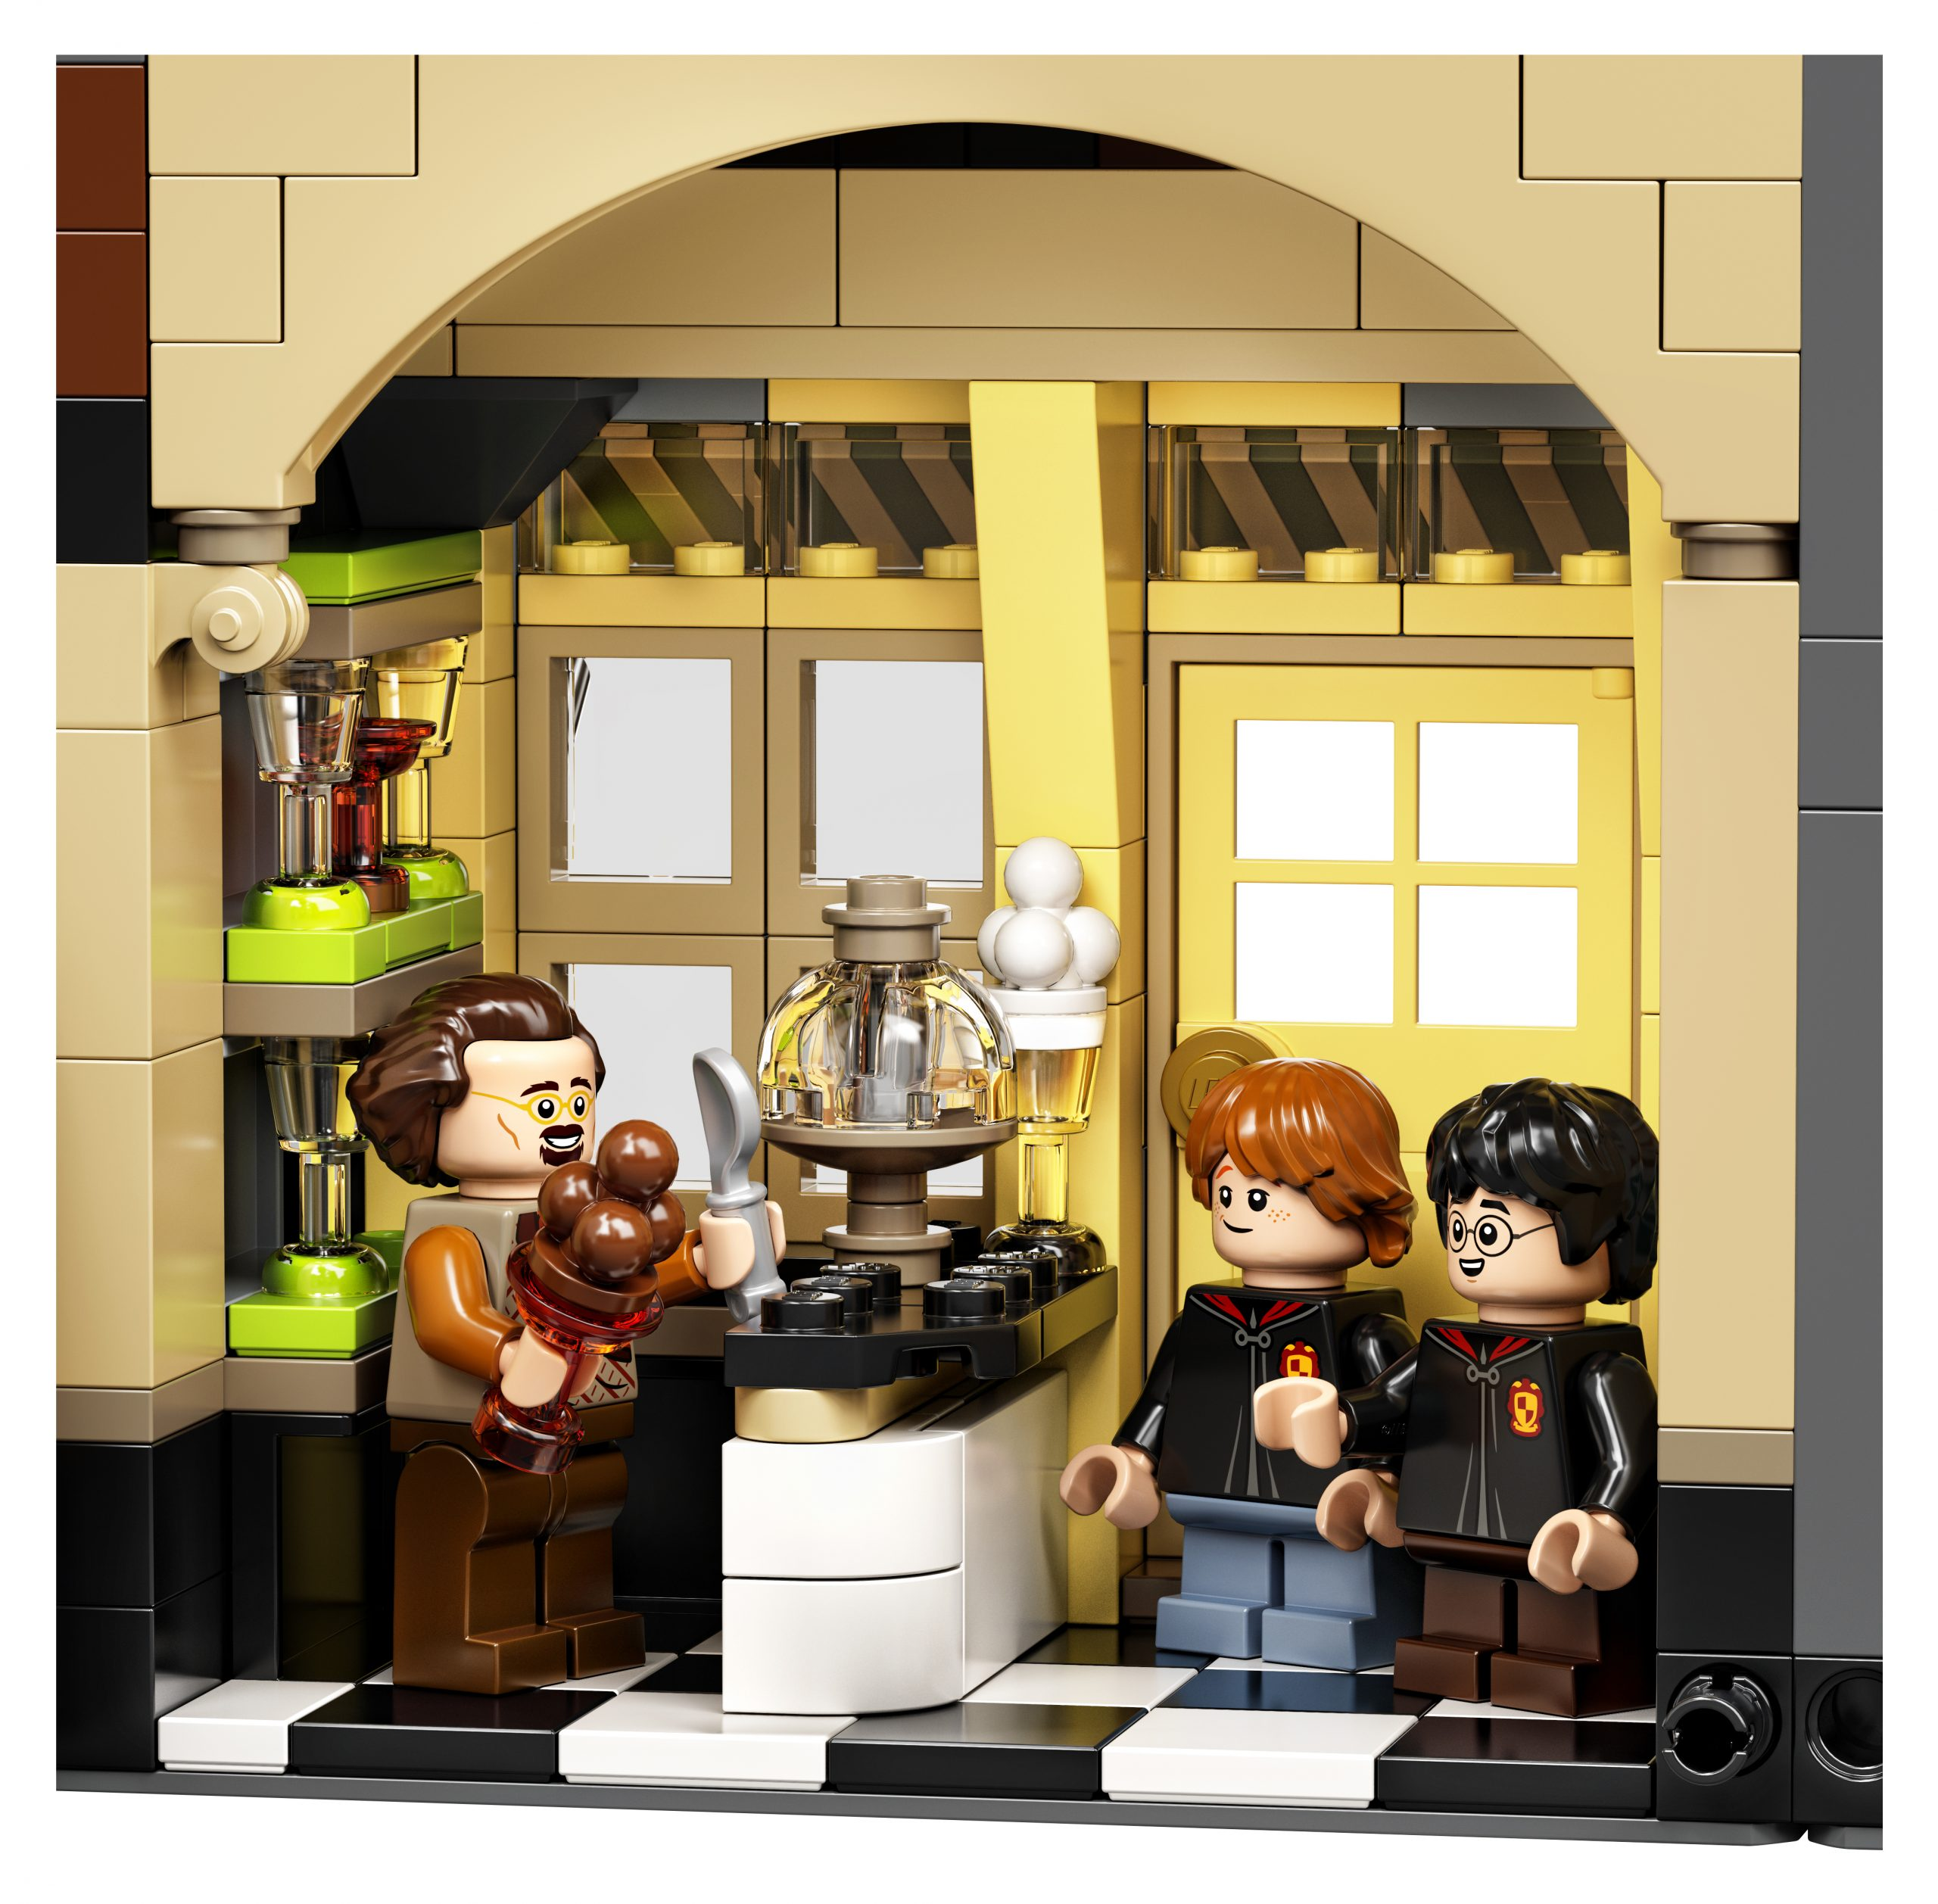 ¡LEGO lanza un espectacular set del Callejón Diagon de 'Harry Potter'!